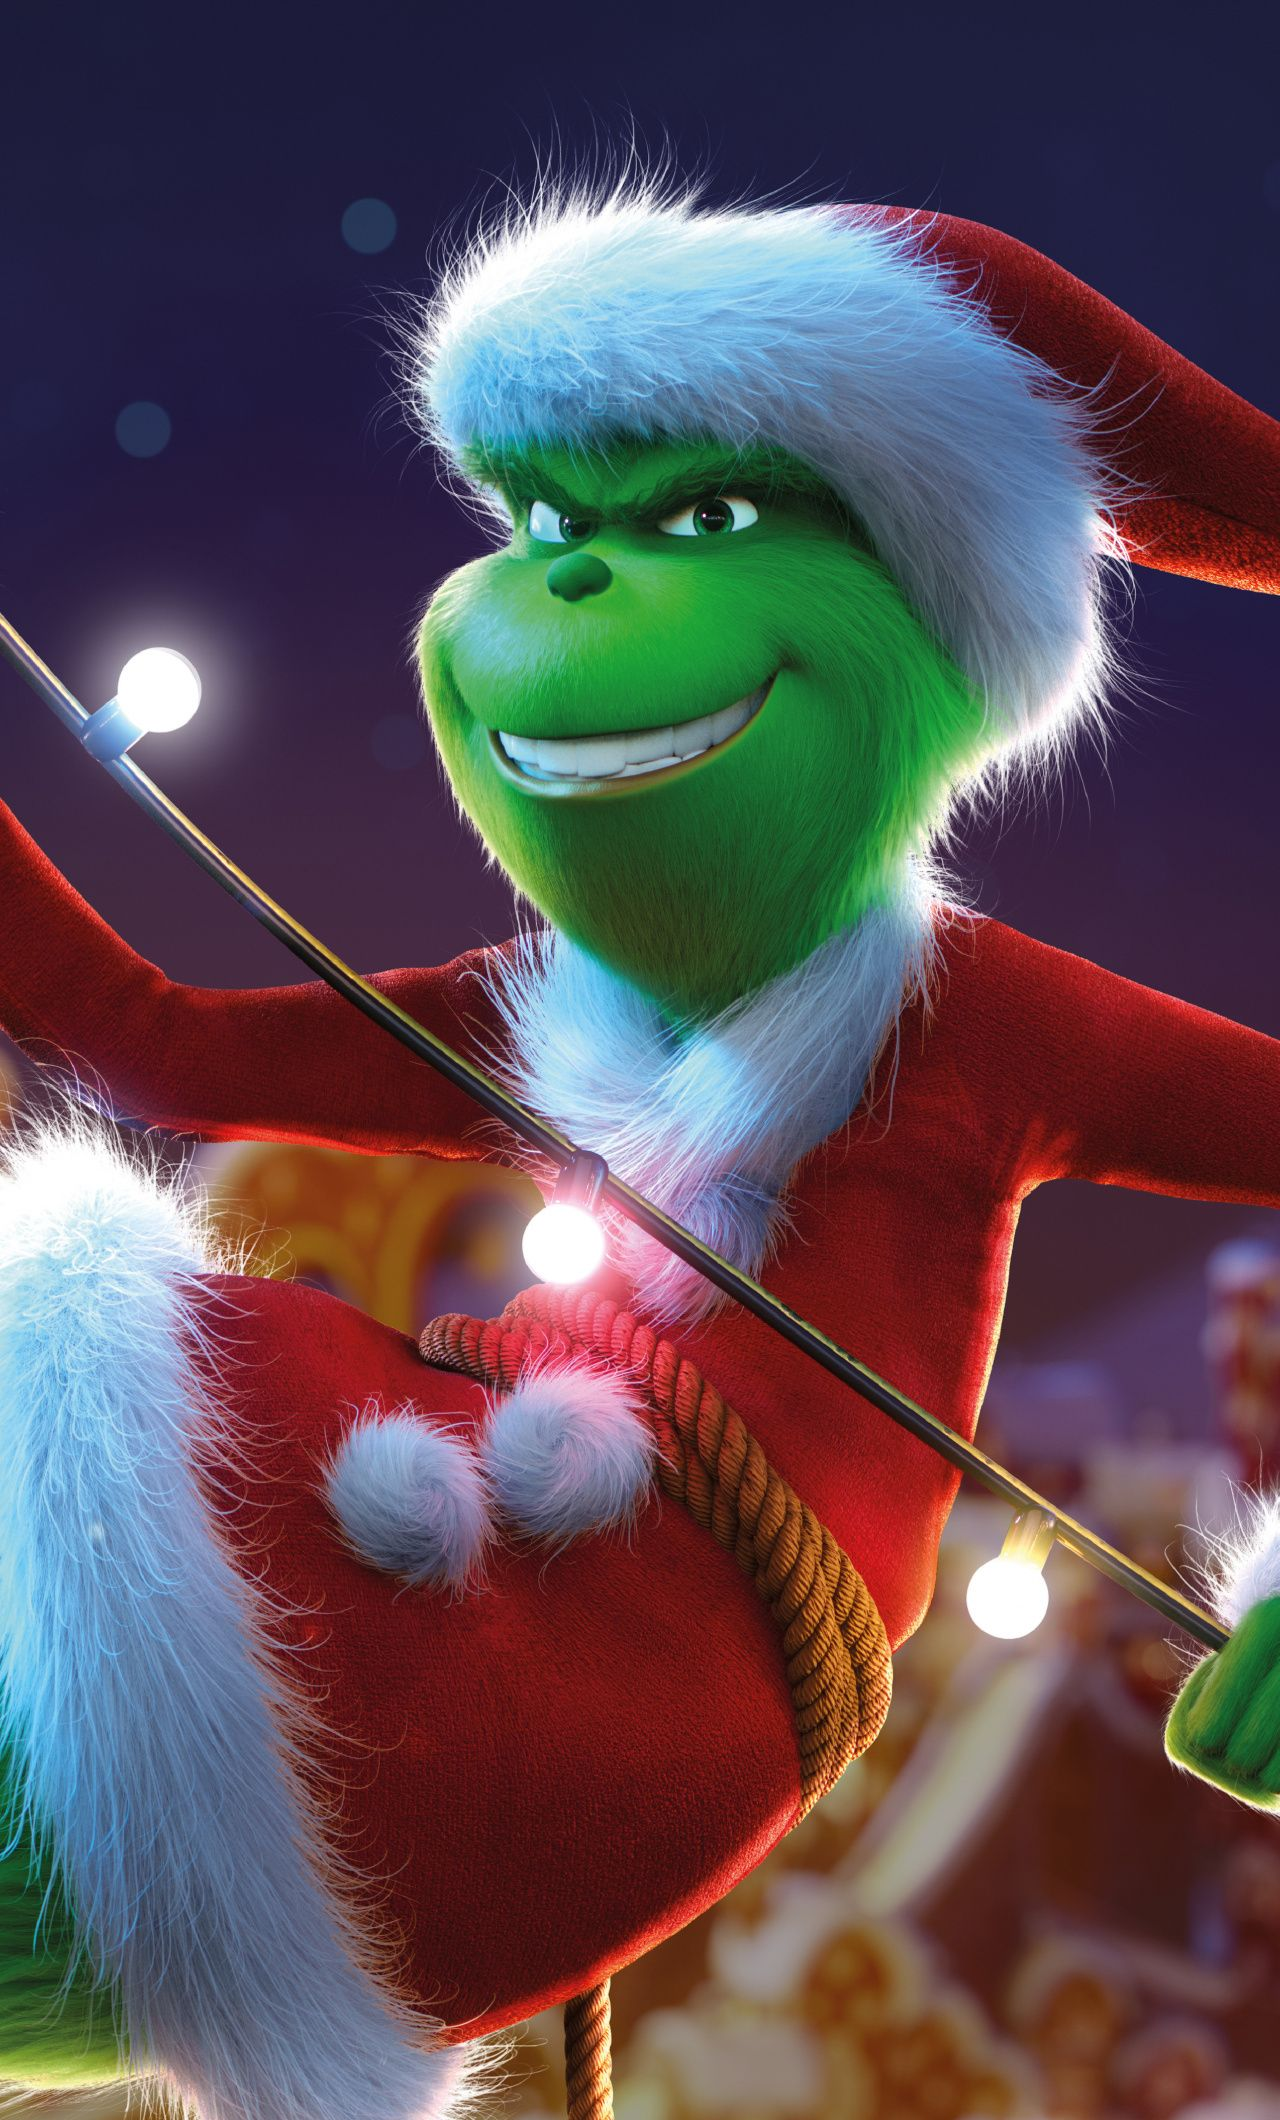 the grinch 2018 hd wallpapers 7wallpapersnet